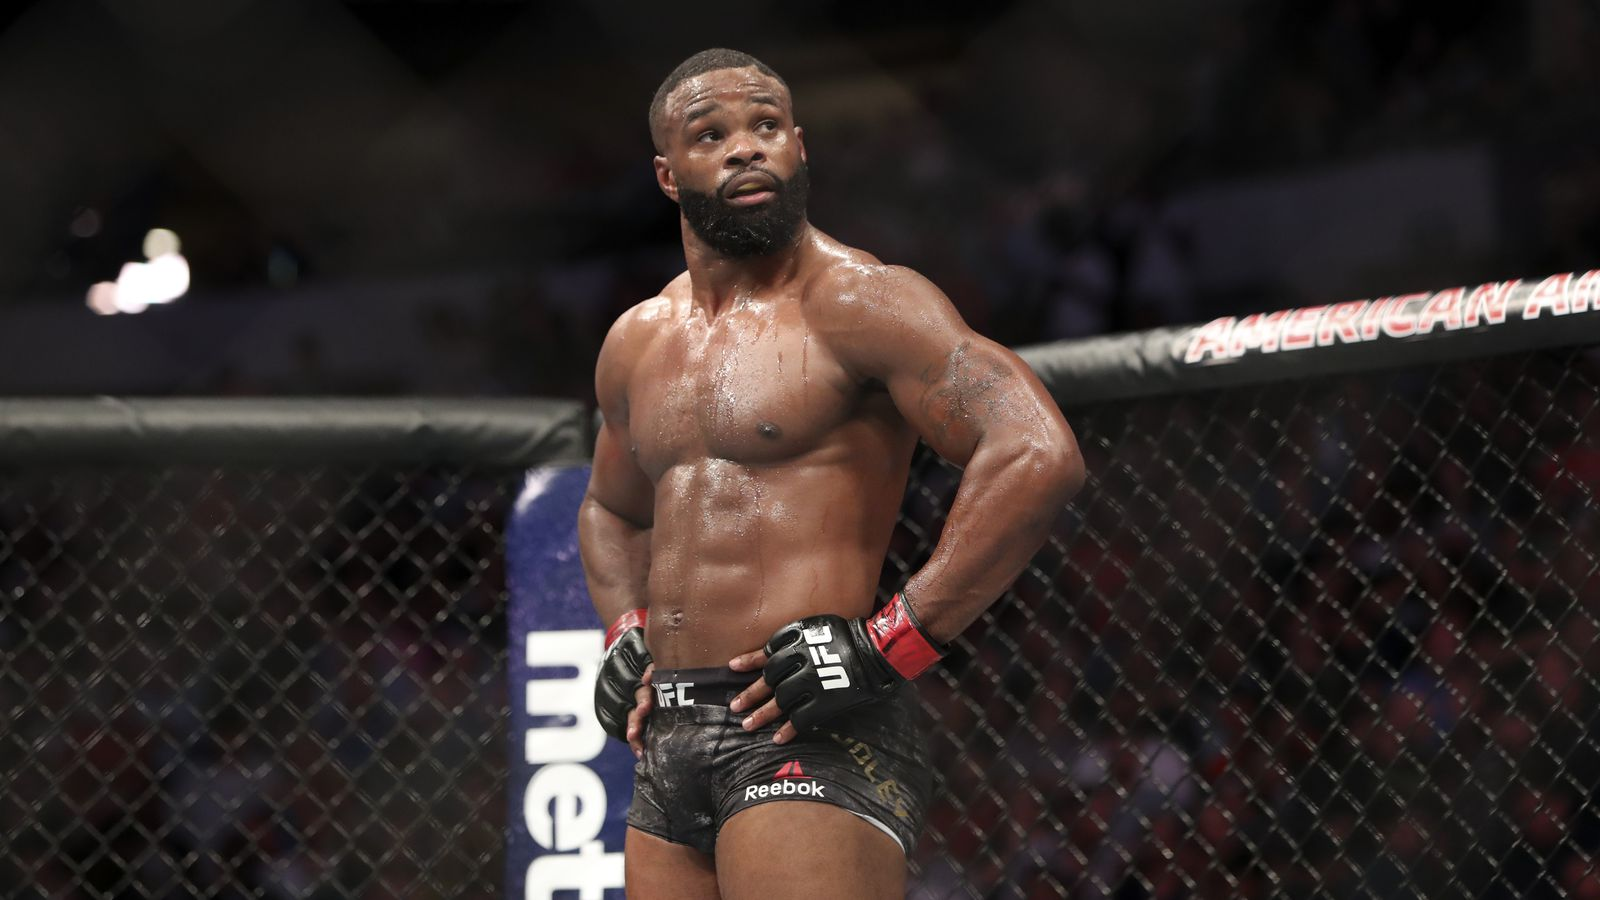 Lil' Conor McGregor stayed at lightweight to avoid getting smashed by Tyron Woodley